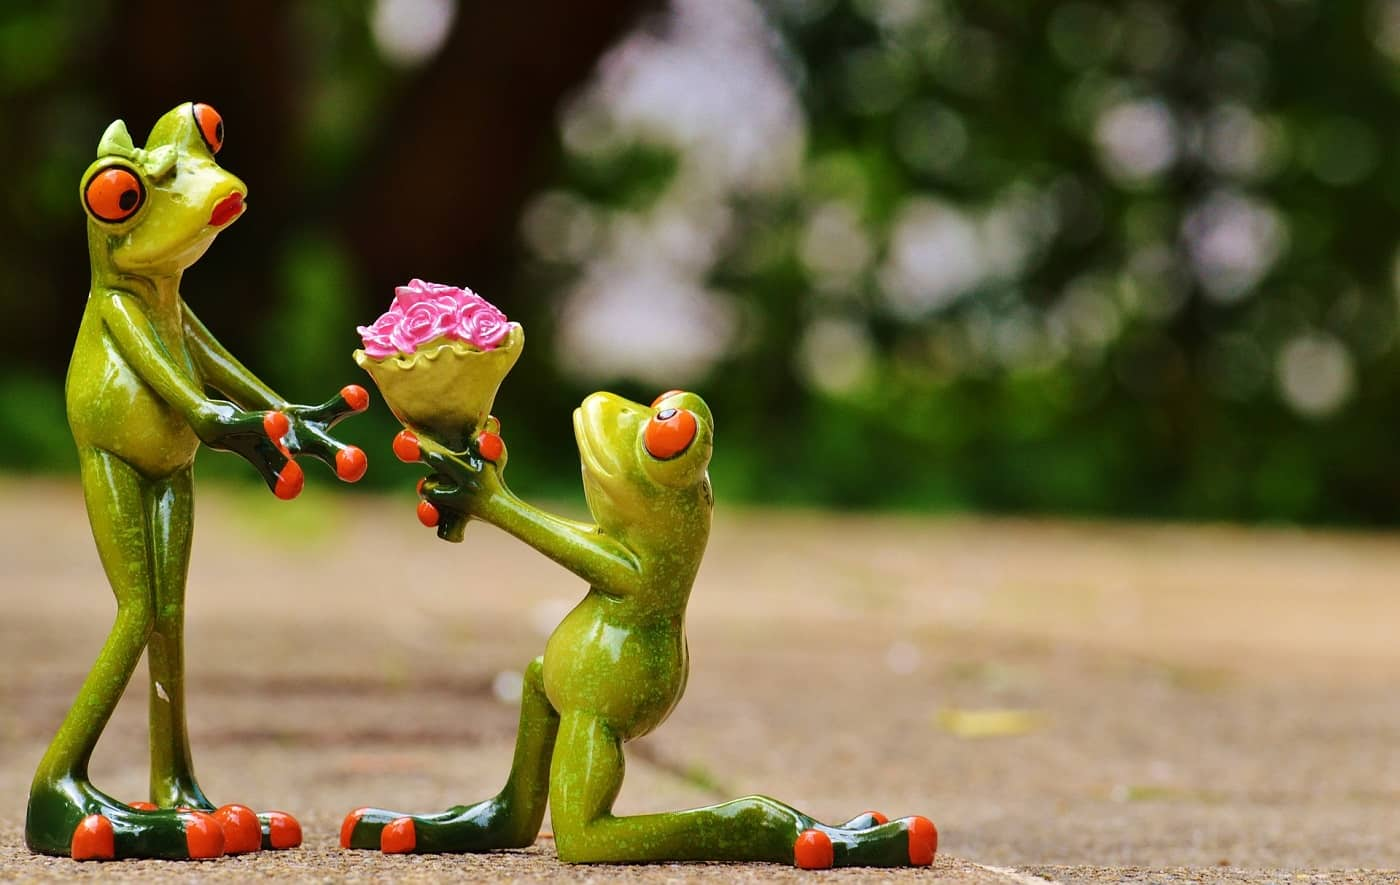 Frog giving another frog flowers - The joy of giving